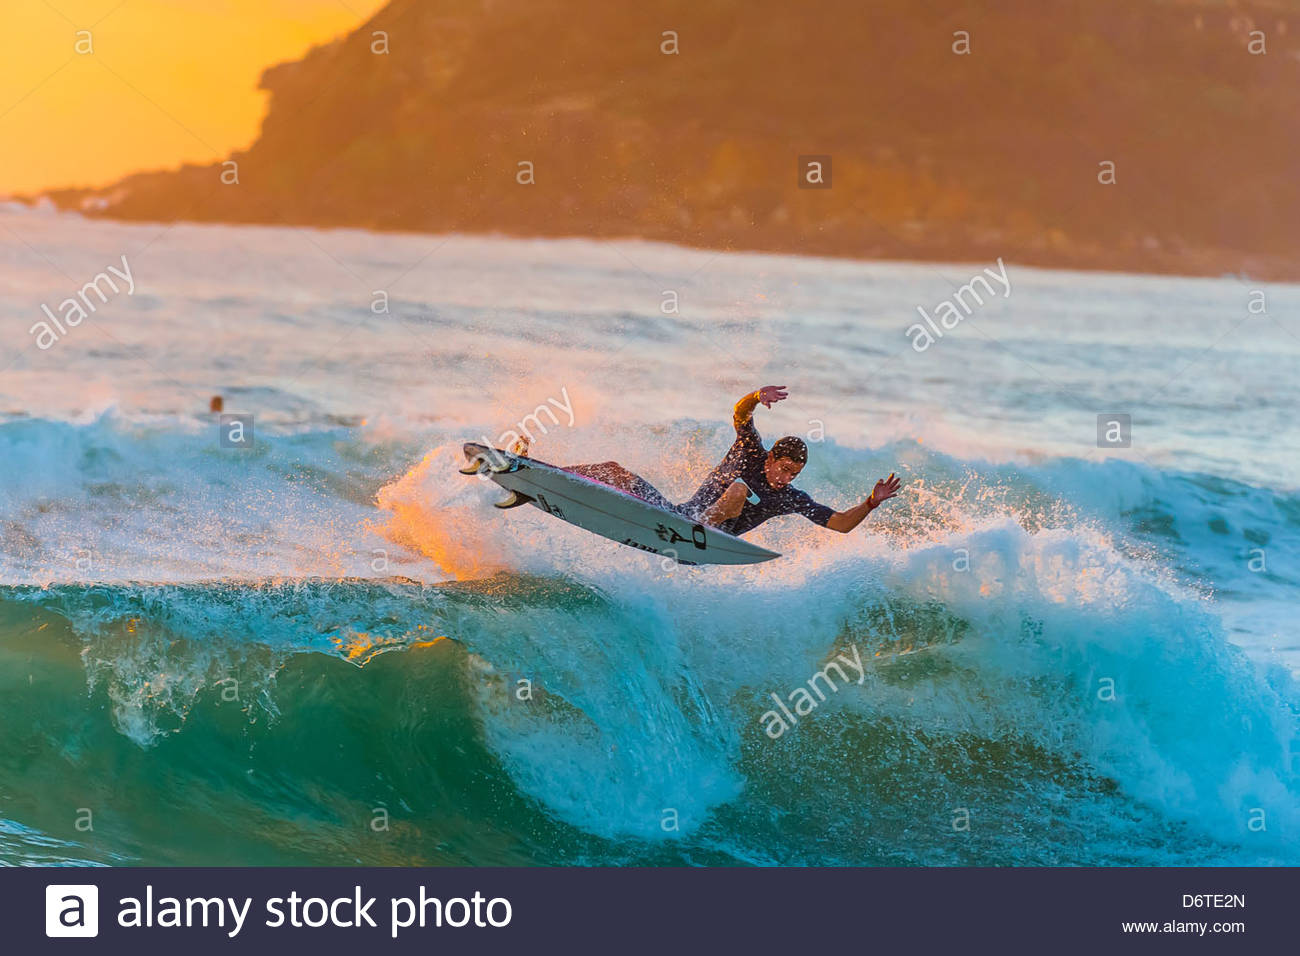 Le surf au lever du soleil, Plage de Manly, Sydney, New South Wales, Australia Photo Stock